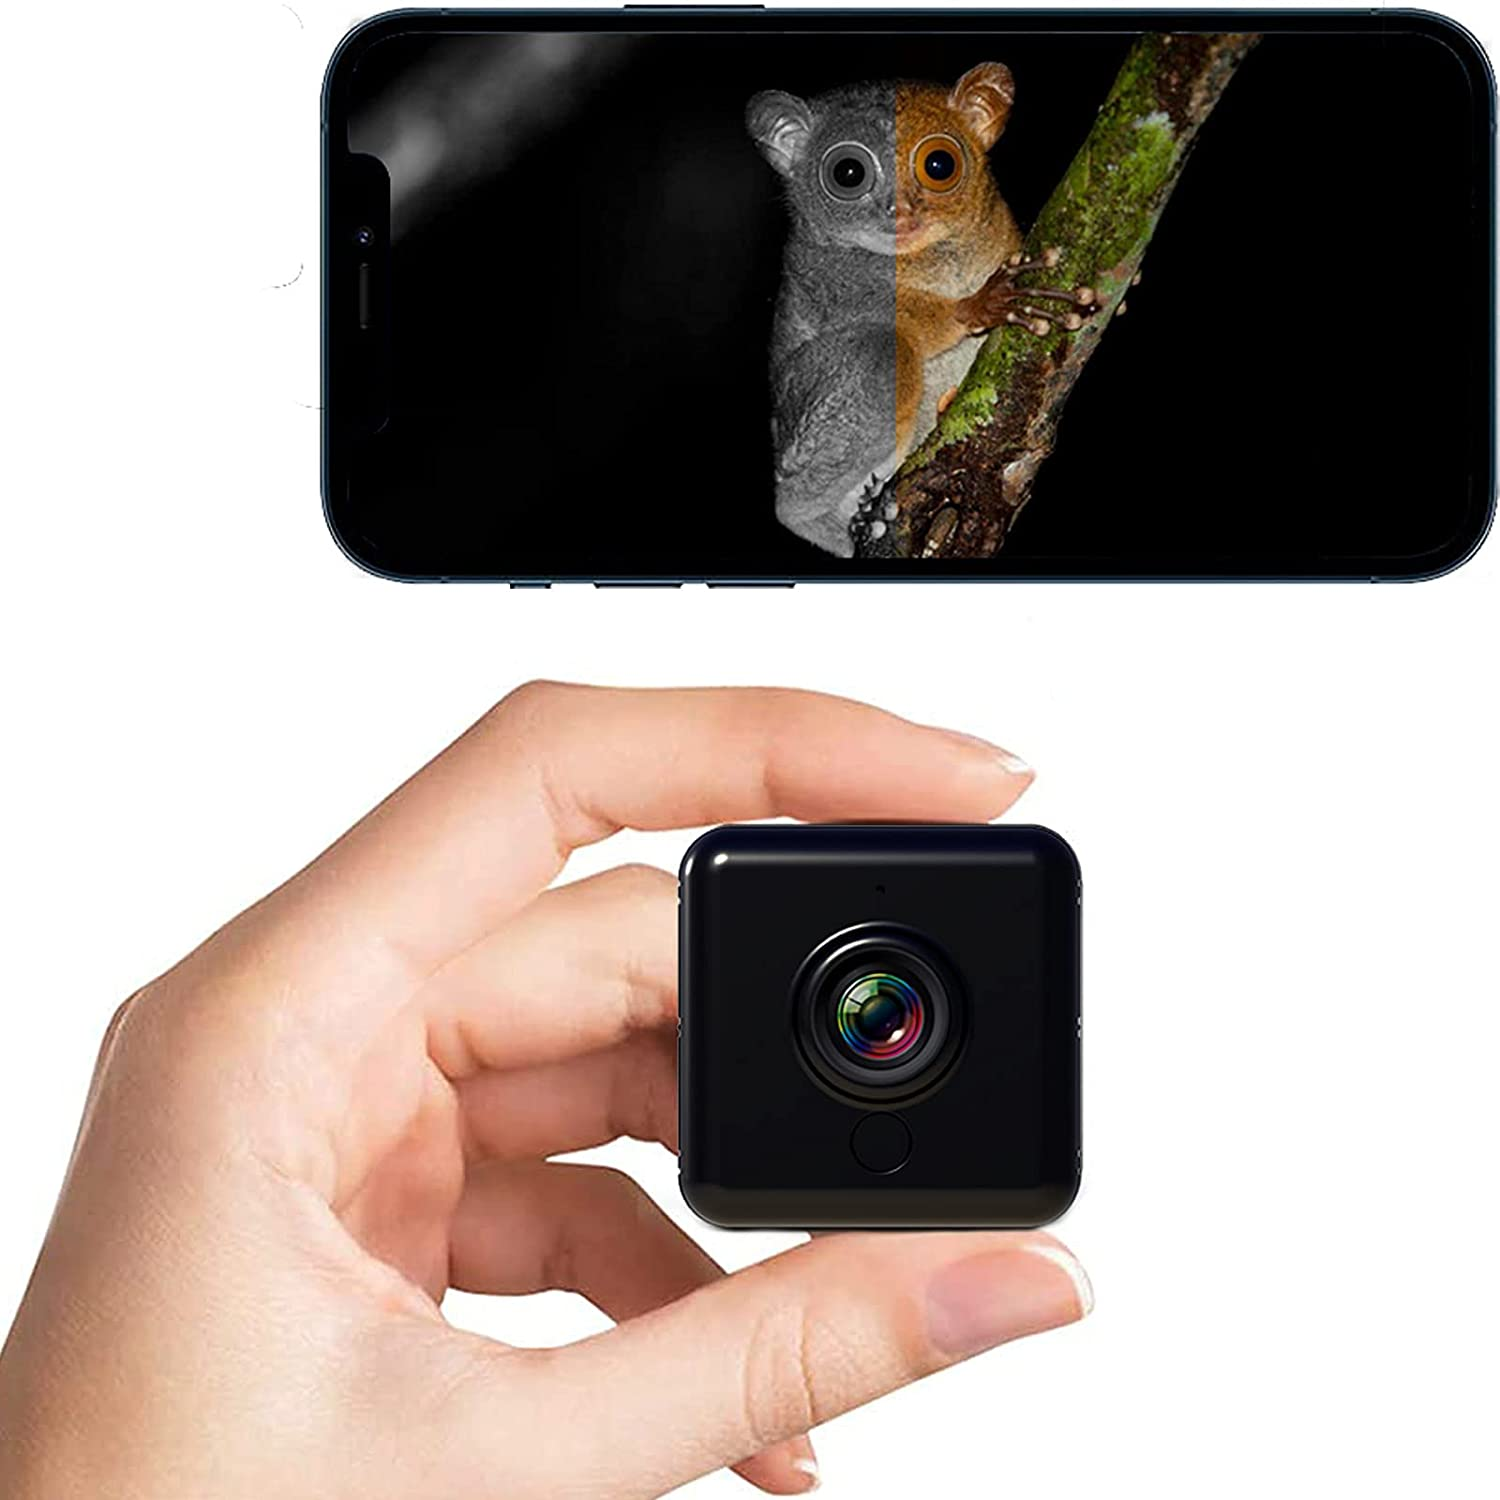 Baby Monitor With Camera and Audio -AfaiTEK IR Cut Mini Dog Cat Pet Cam w/ Phone App Nanny Cam Wireless WiFi for Home Security Surveillance, Smartphone Compatible Bebe Camaras, Portable Small Dash Cam